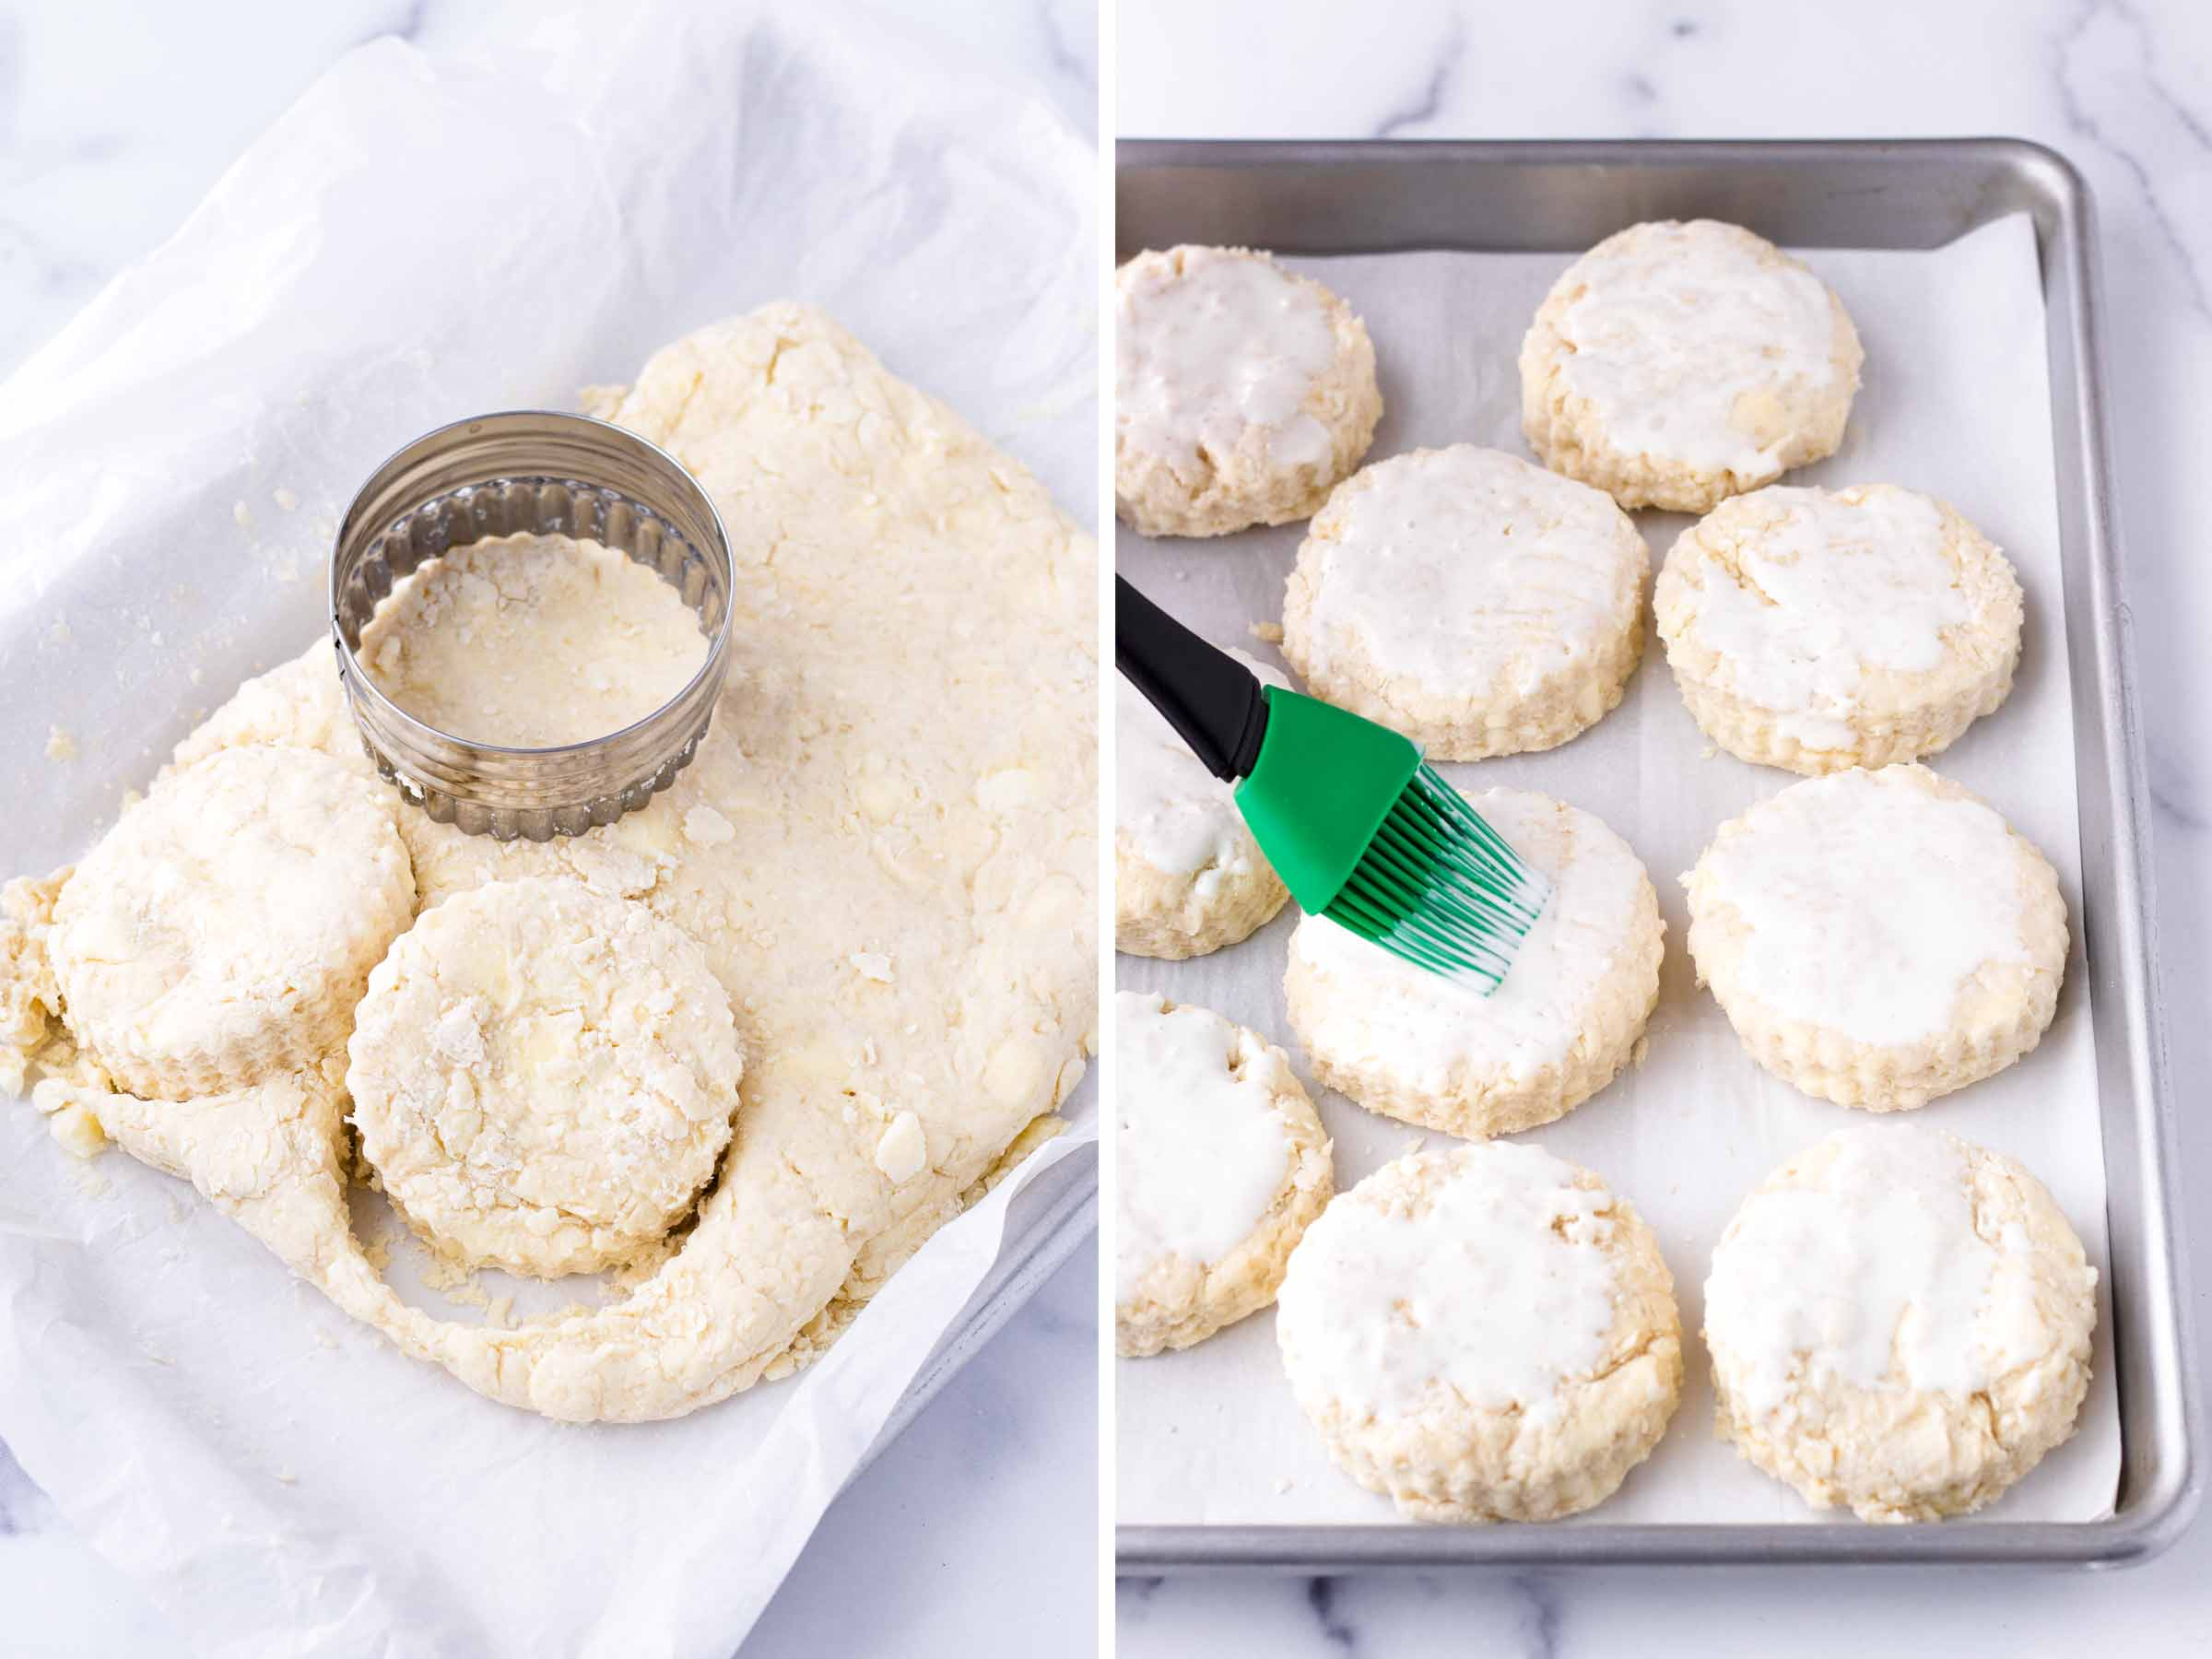 cutting out dough with round cutter and brushing with cream